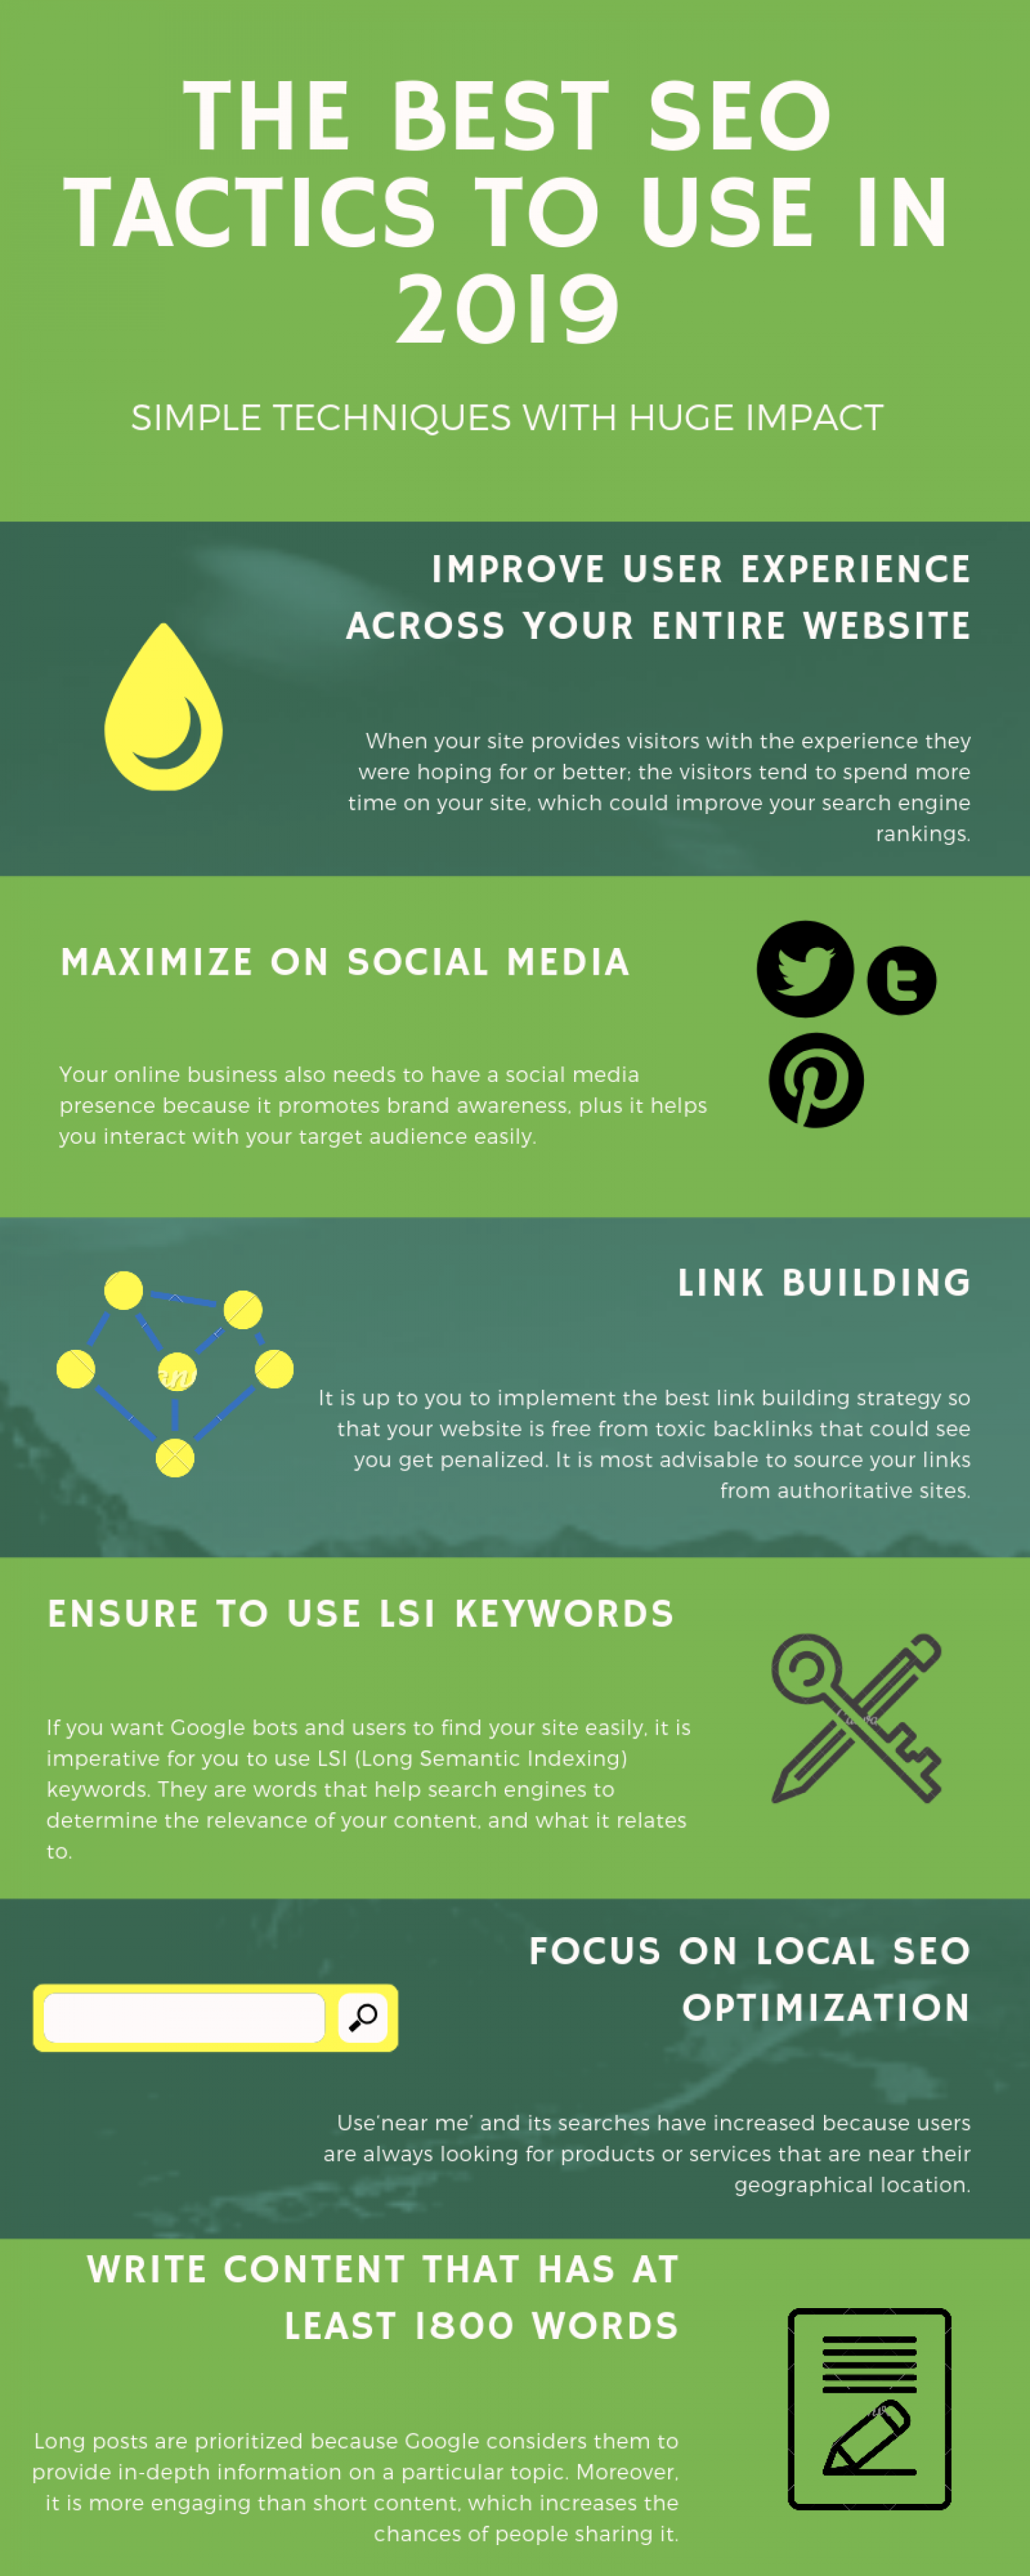 Info-graphic for The Best SEO Tactics to Use in 2019 Infographic